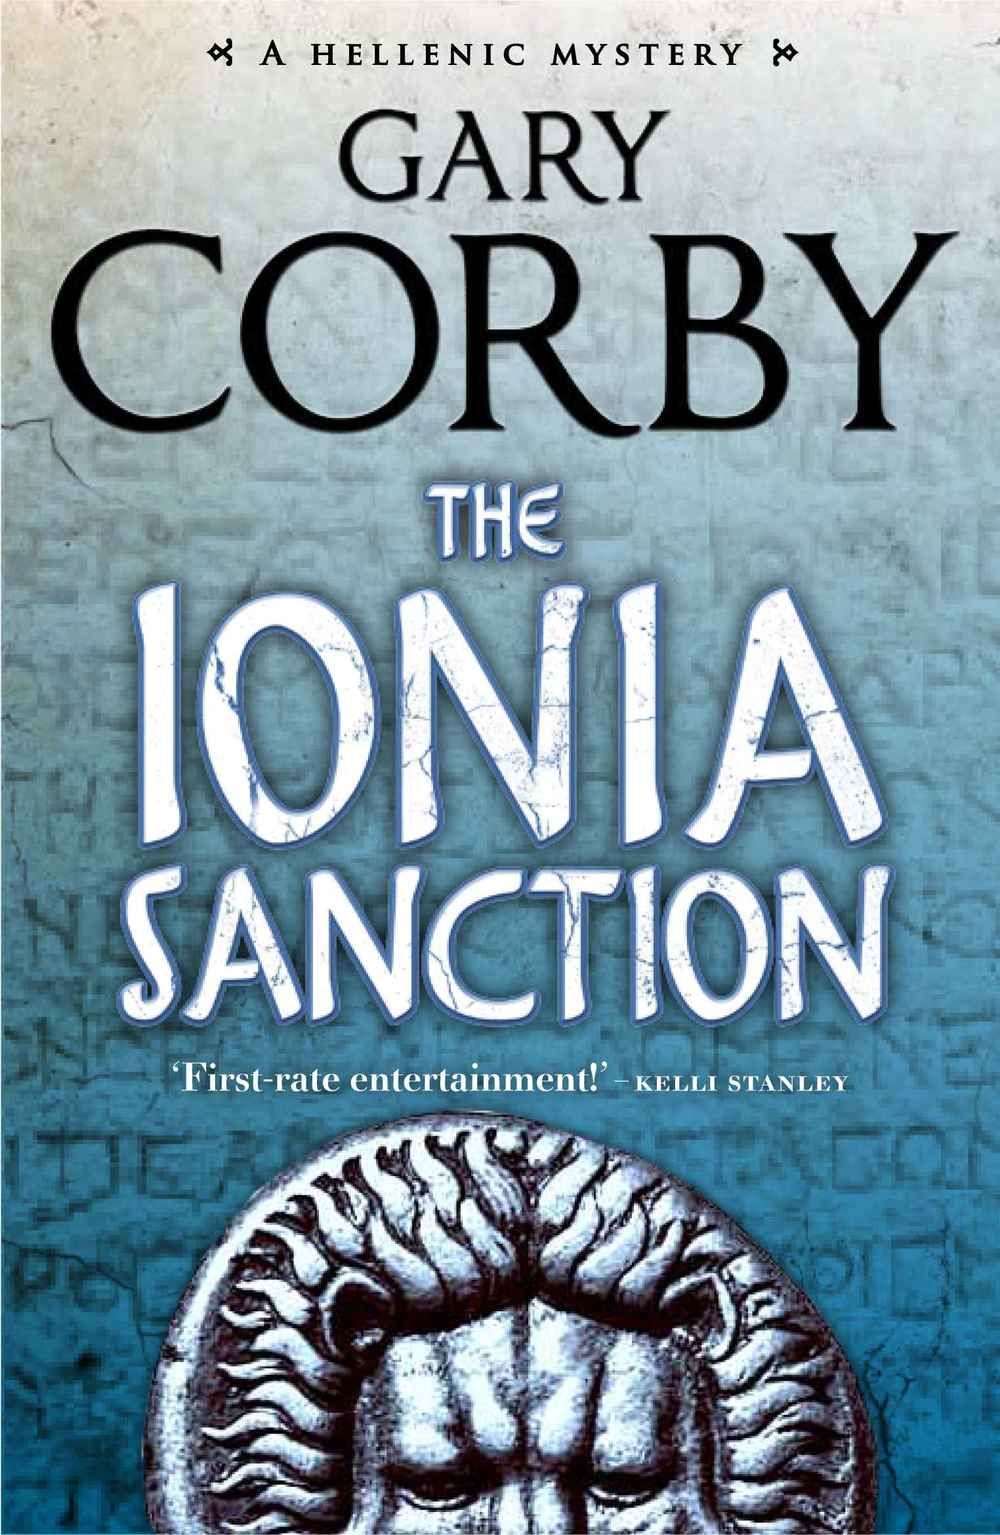 The Ionia Sanction